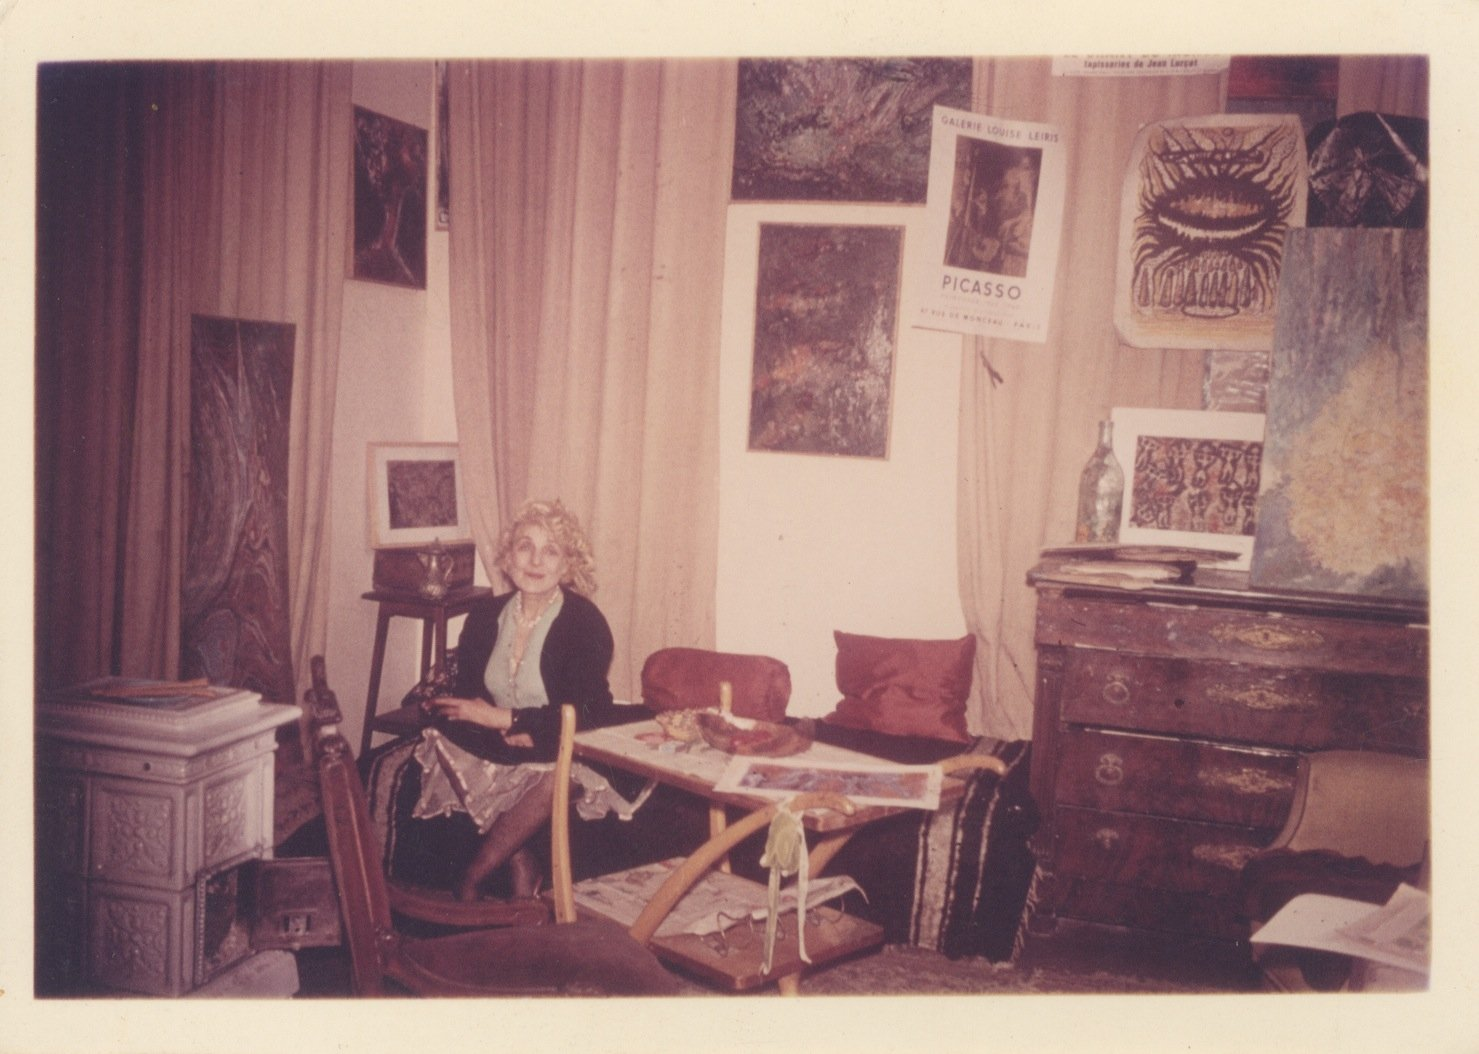 Aliye Berger at her home studio in 1965. (Courtesy of SALT Research)